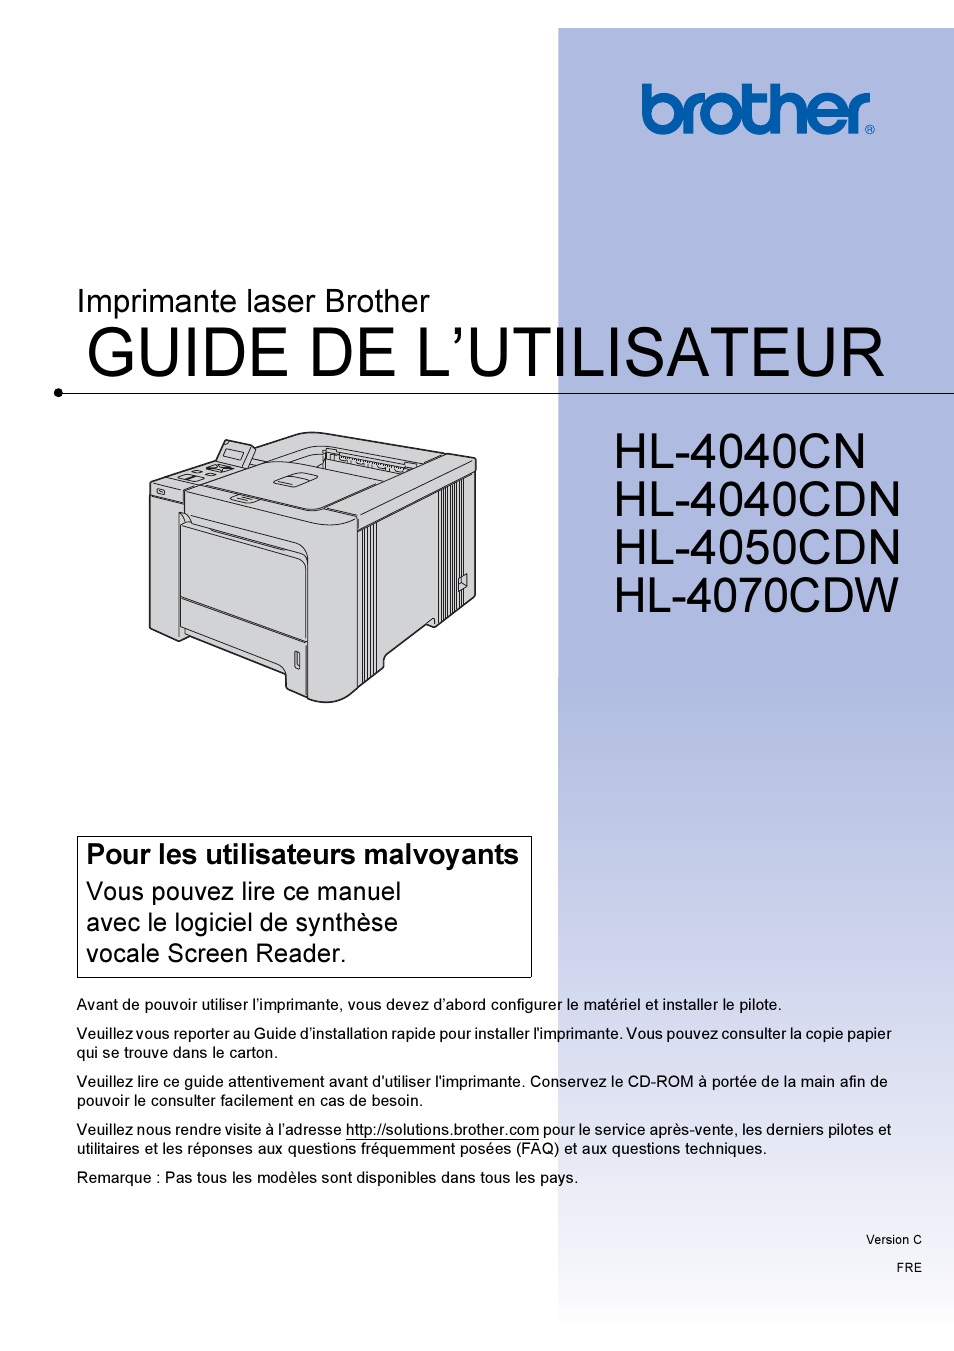 brother hl 4070cdw page1 brother hl 4070cdw manuel d'utilisation pages 213 aussi pour  at n-0.co